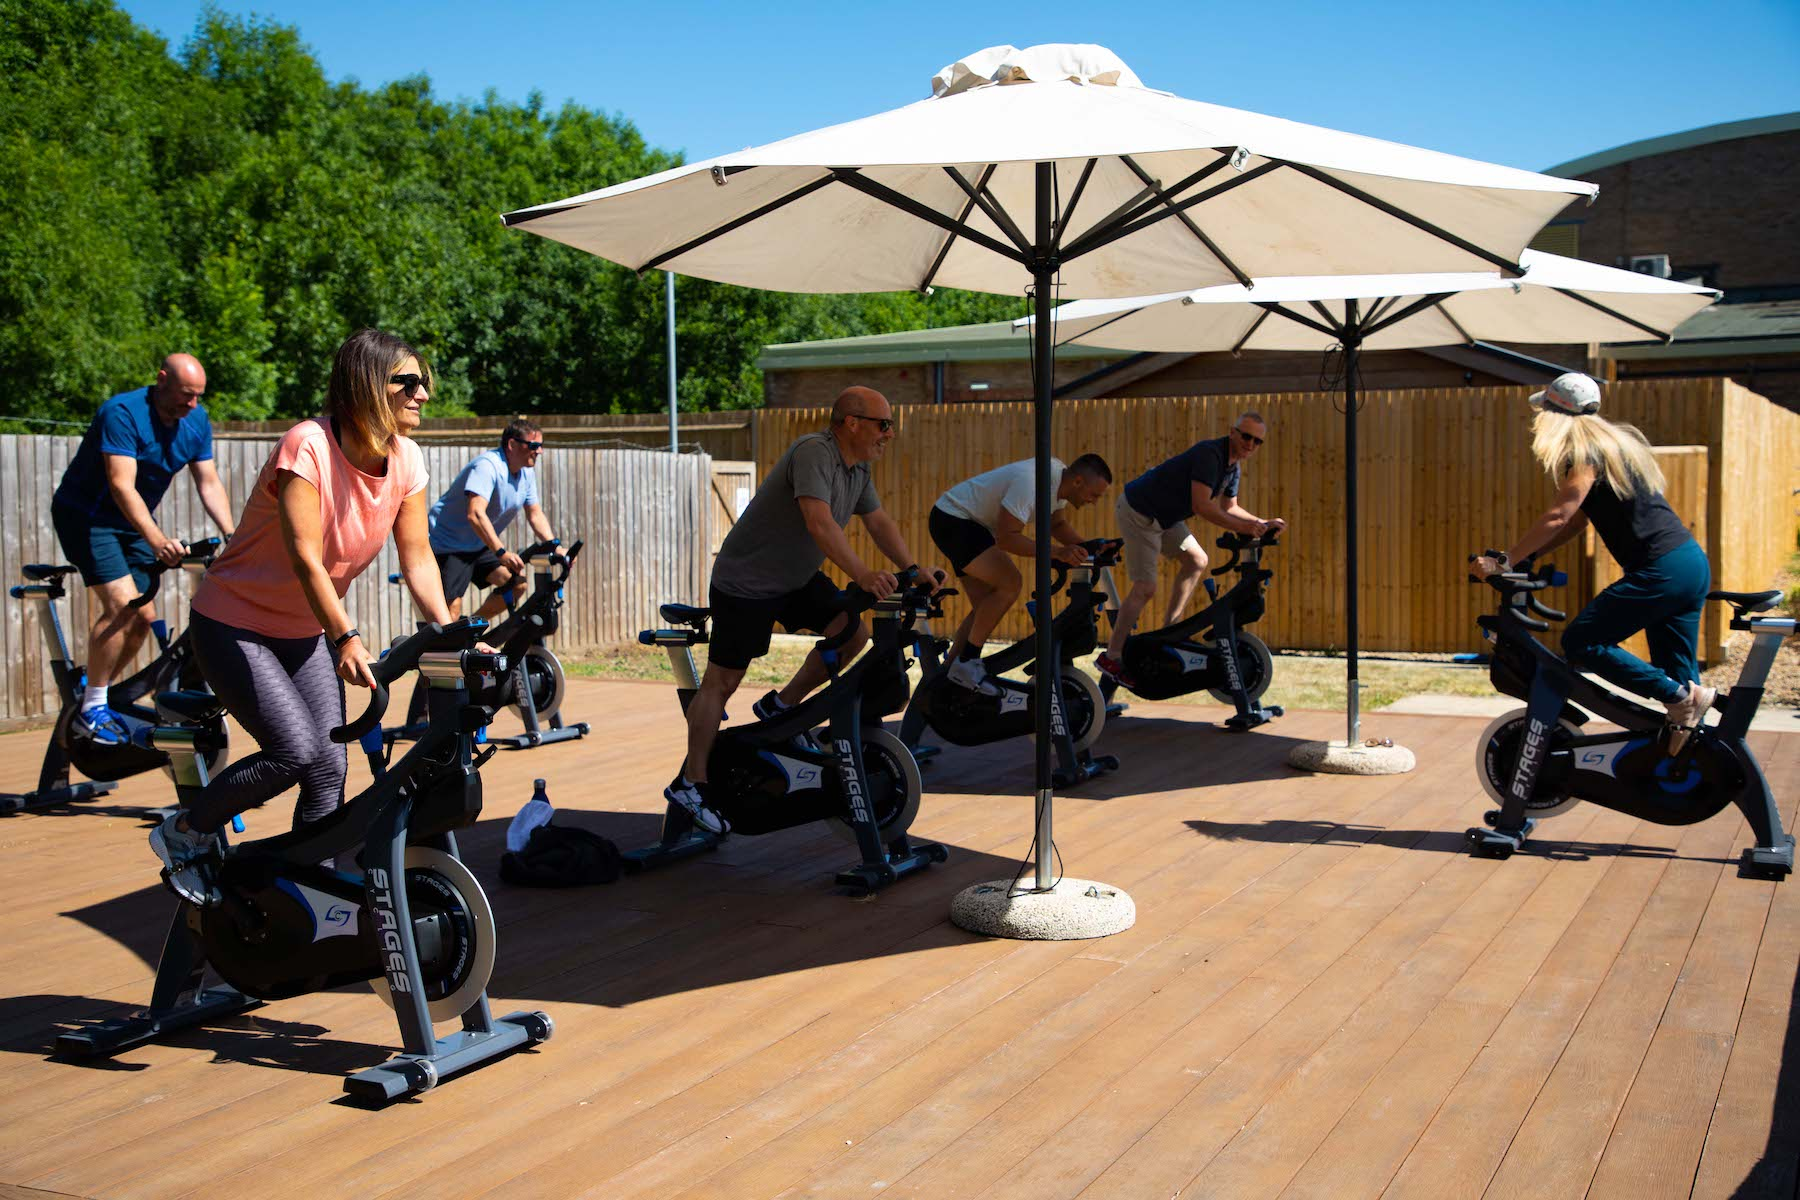 Luton and Milton Keynes David Lloyd reopen for outdoor fitness